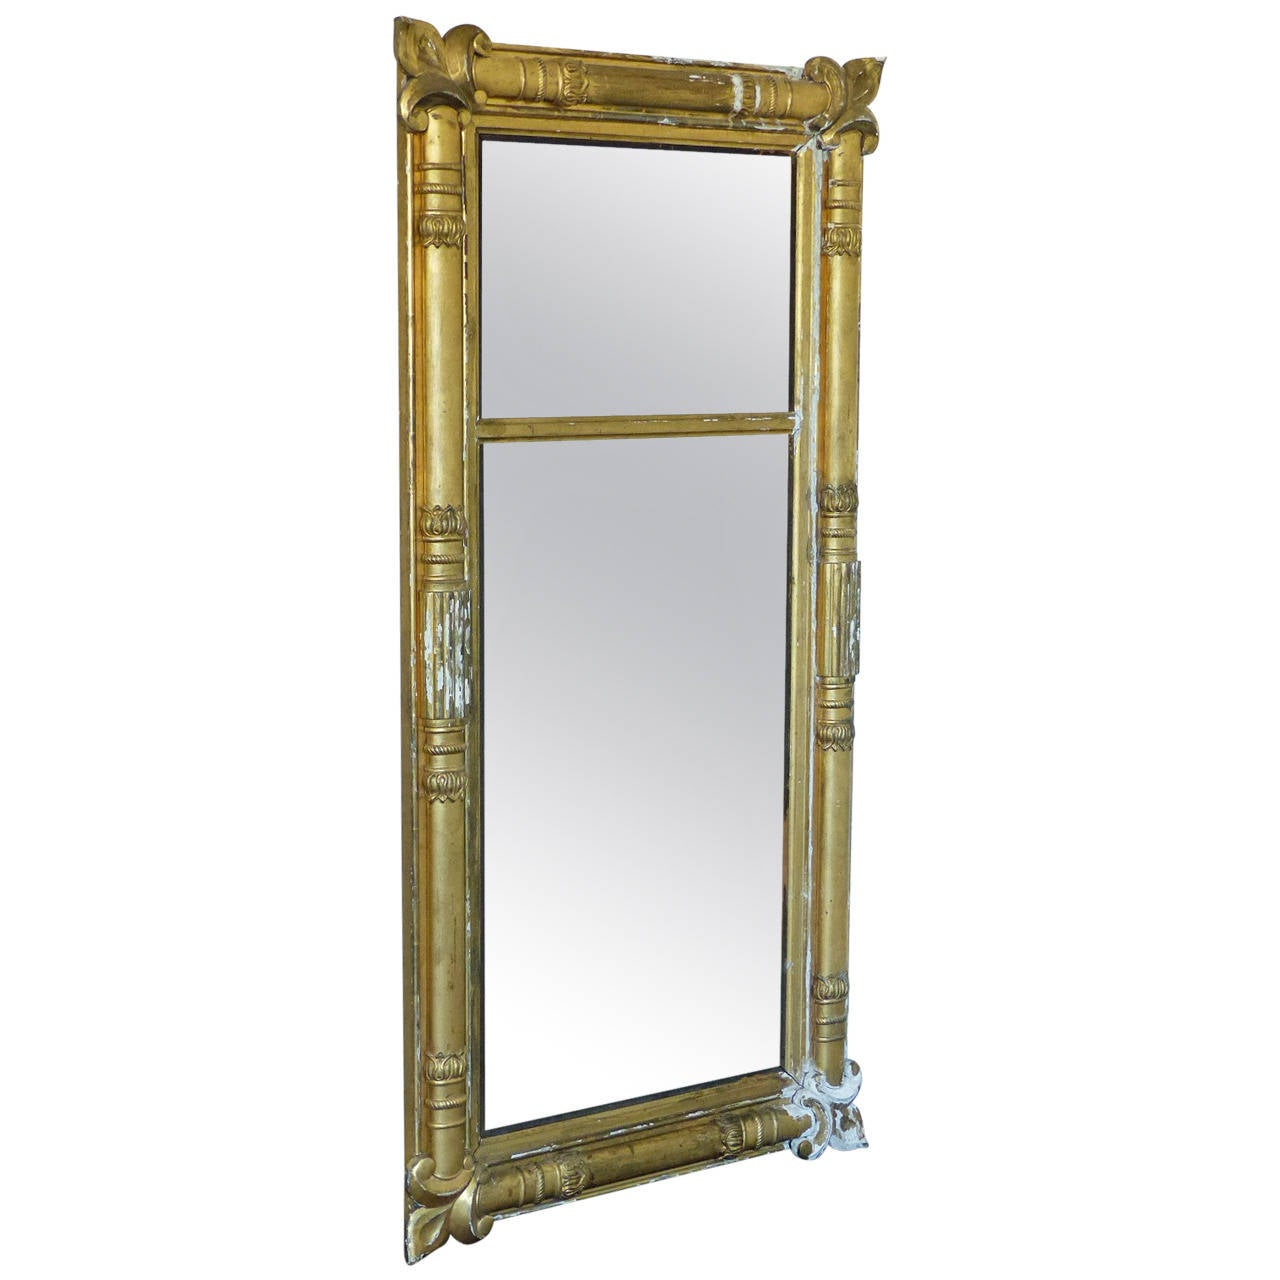 Gilded mantel mirror at 1stdibs for Fireplace mirrors